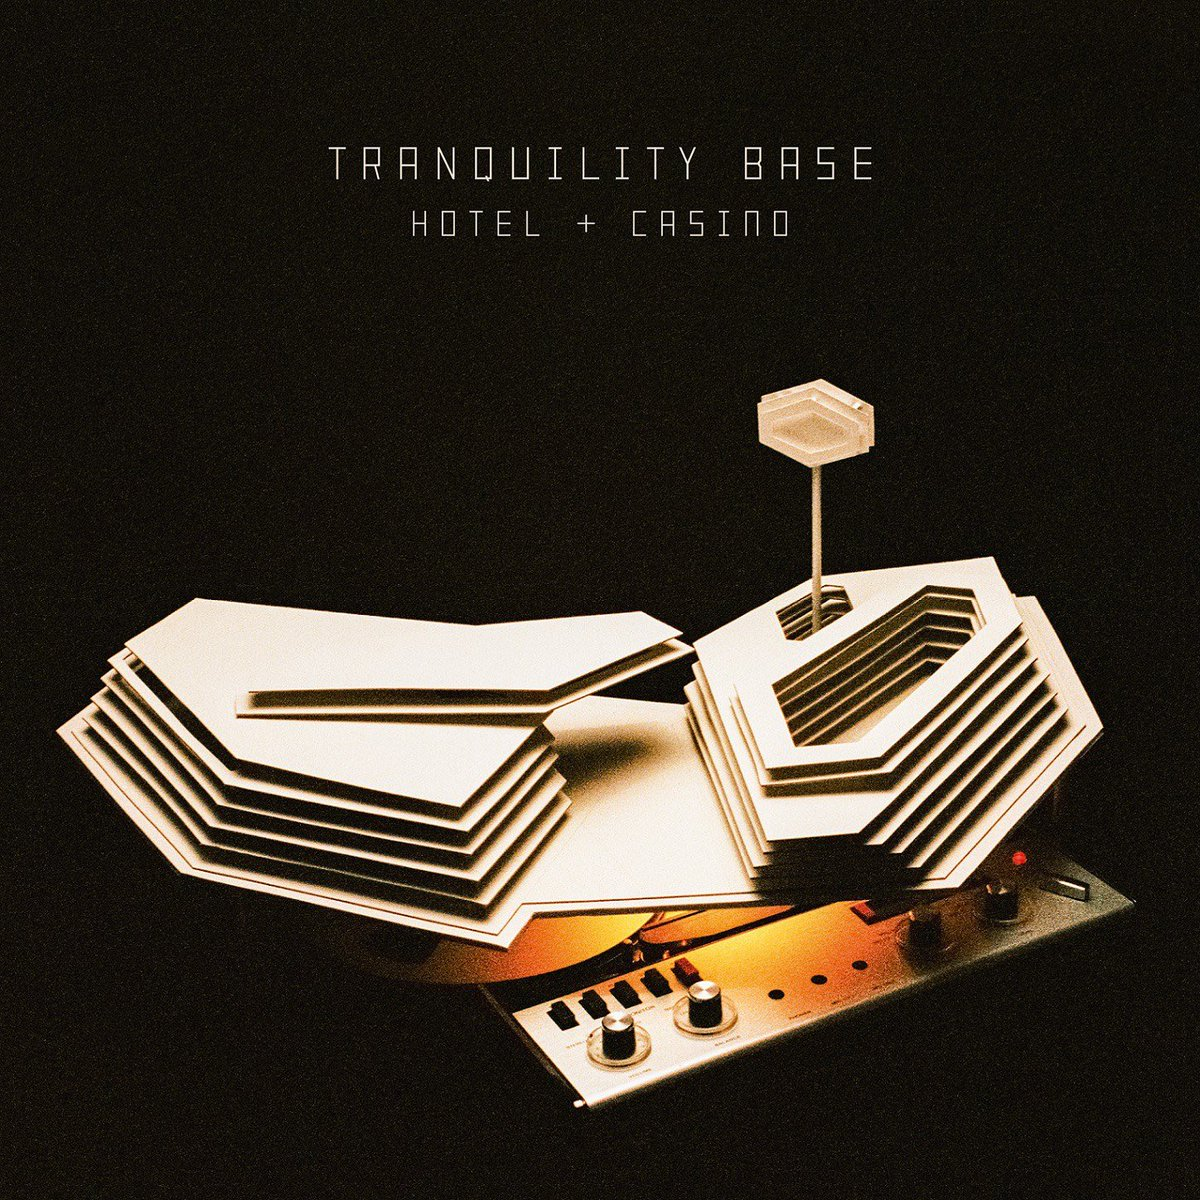 :: ROUNDTABLE :: Our writers weigh in on @ArcticMonkeys sixth album Tranquility Base Hotel & Casino in regards to discuss its musical direction, lyrical emotion, Alex Turners wit, and more.  🎶 atwoodmagazine.com/tbhc 🎶